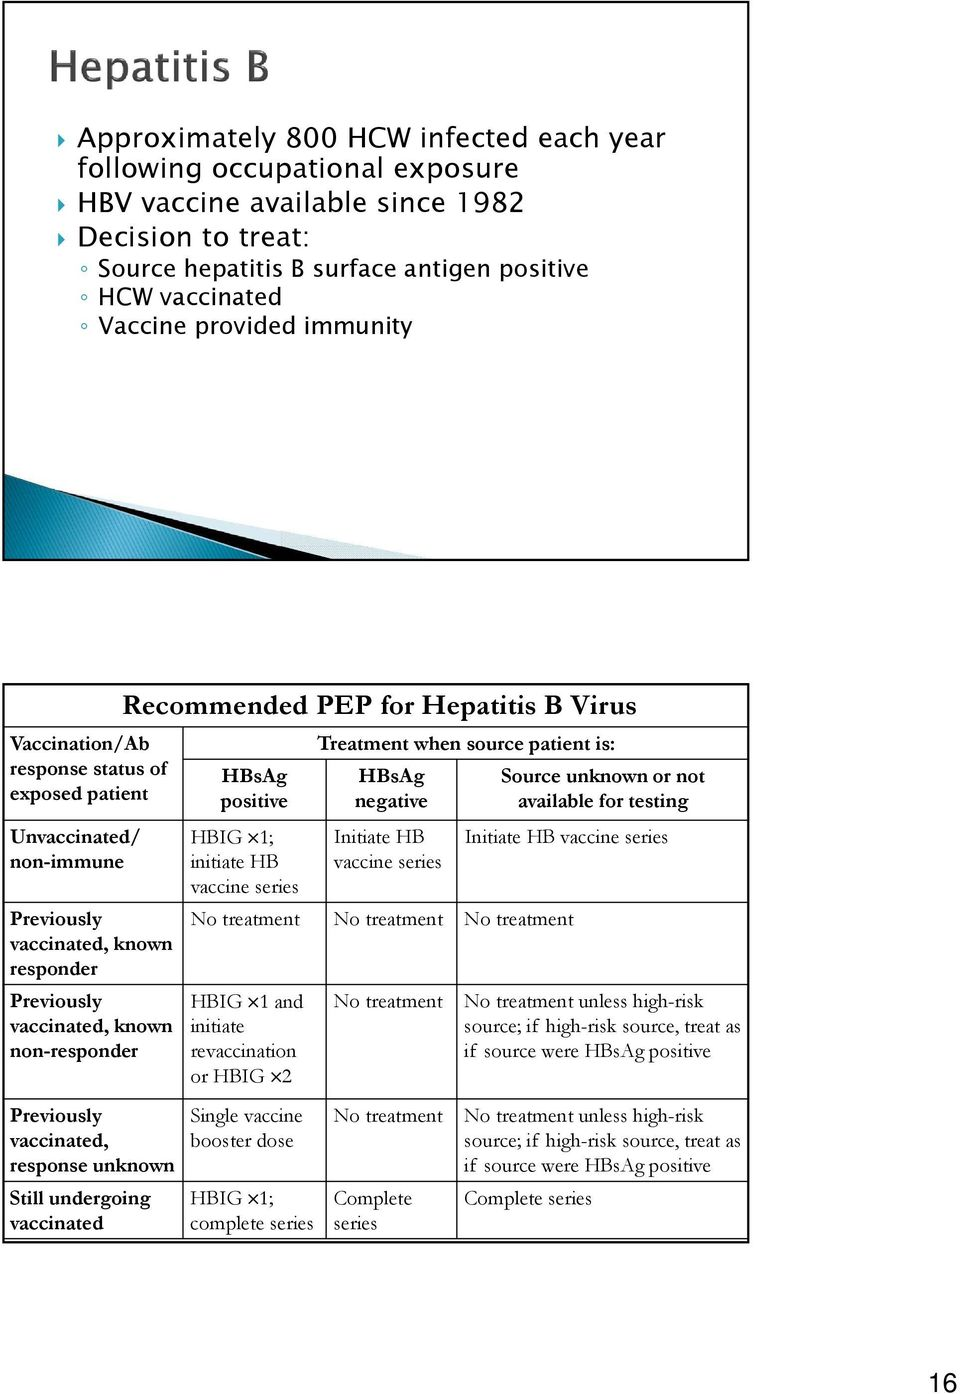 response unknown Still undergoing vaccinated Recommended PEP for Hepatitis B Virus HBsAg positive HBIG 1; initiate HB vaccine series Treatment when source patient is: HBsAg negative Initiate HB